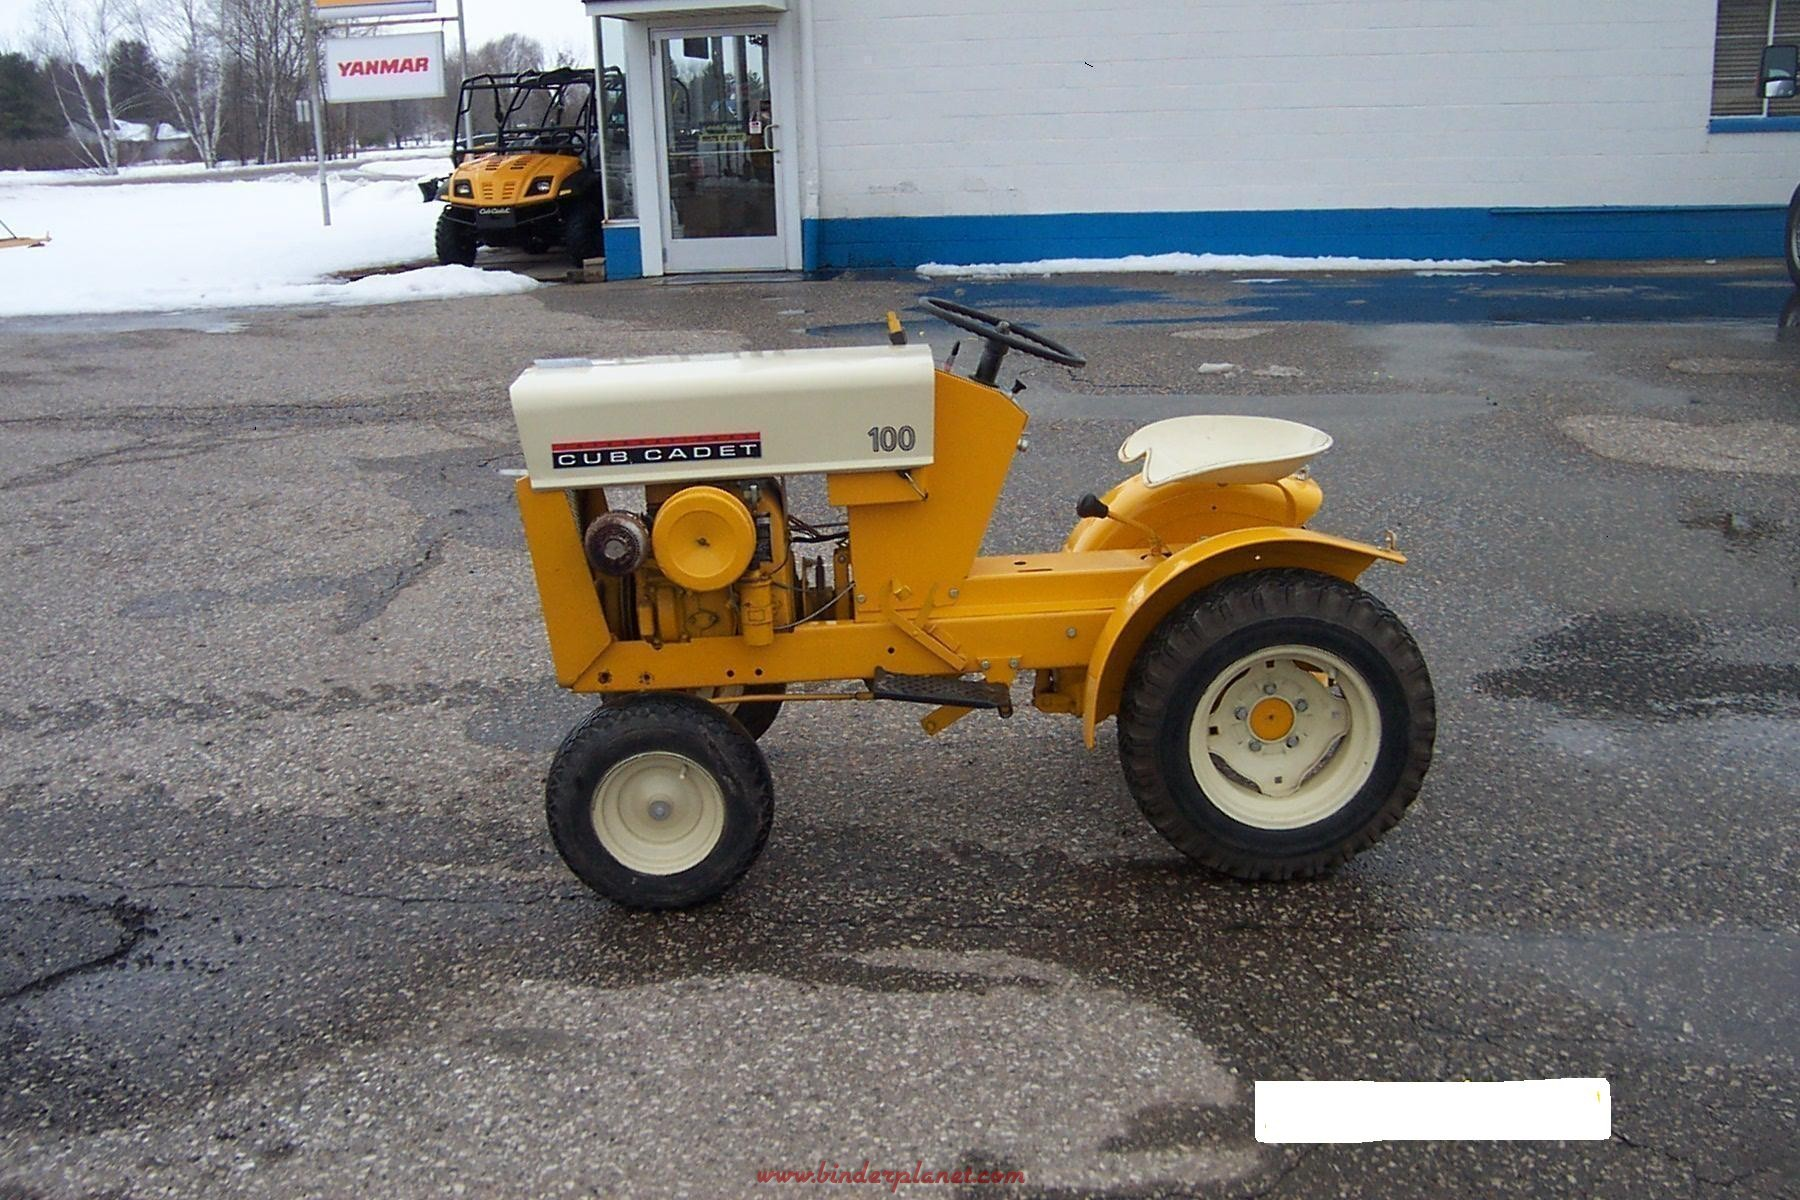 Collector Cub Cadet Tractors : Large cub cadet tractor collection binderplanet